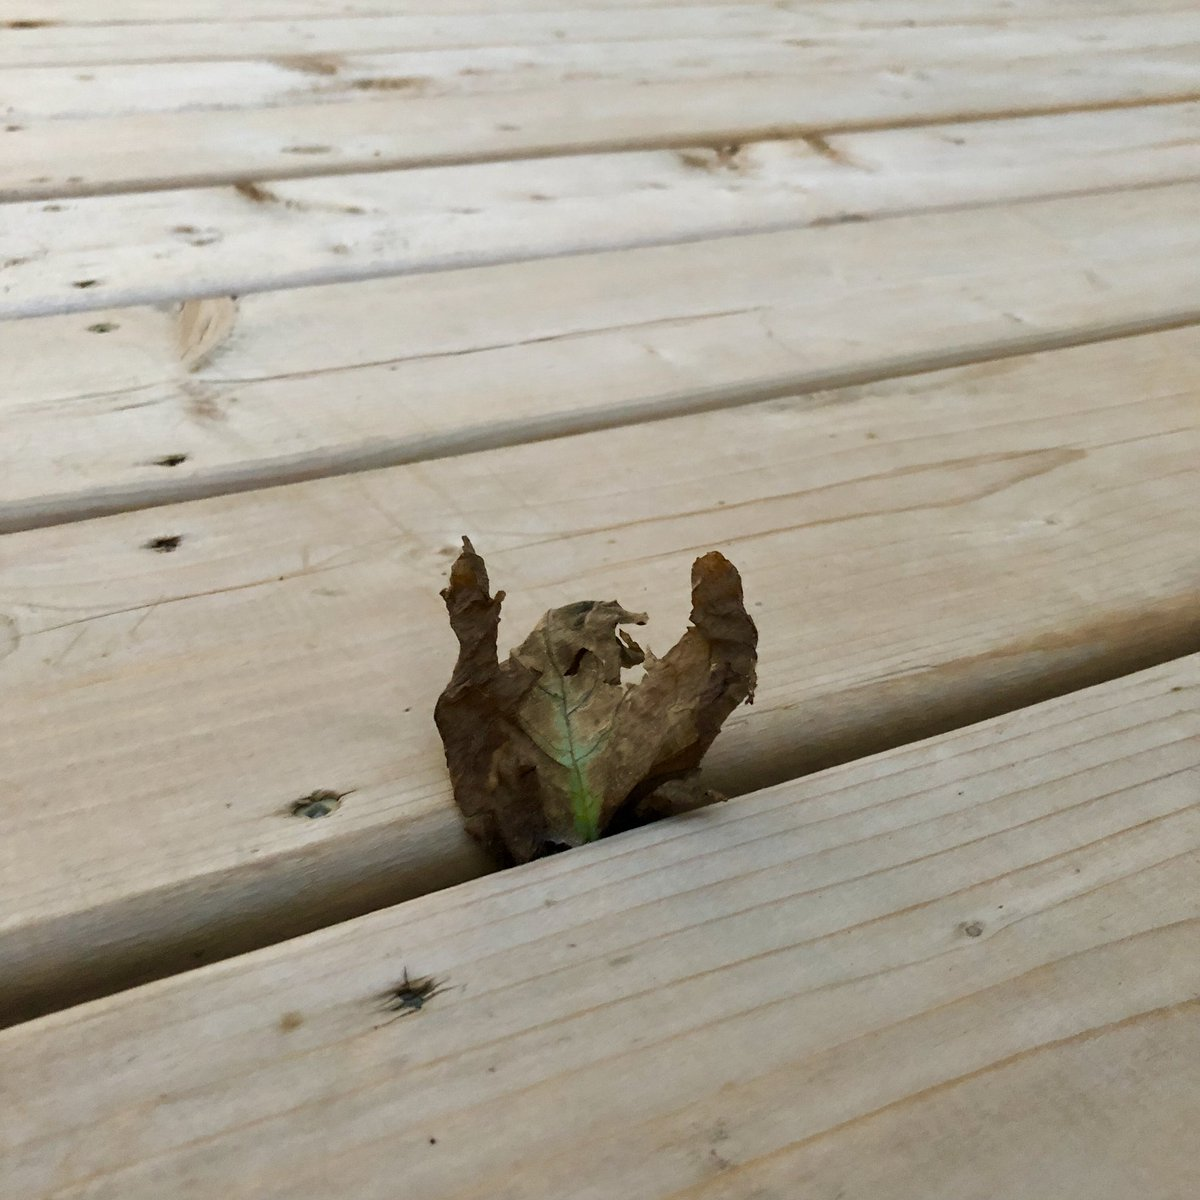 The leaf in my deck has finally surrendered.  #SundayMorning  #SundayThoughts<br>http://pic.twitter.com/EvzZe8aszJ